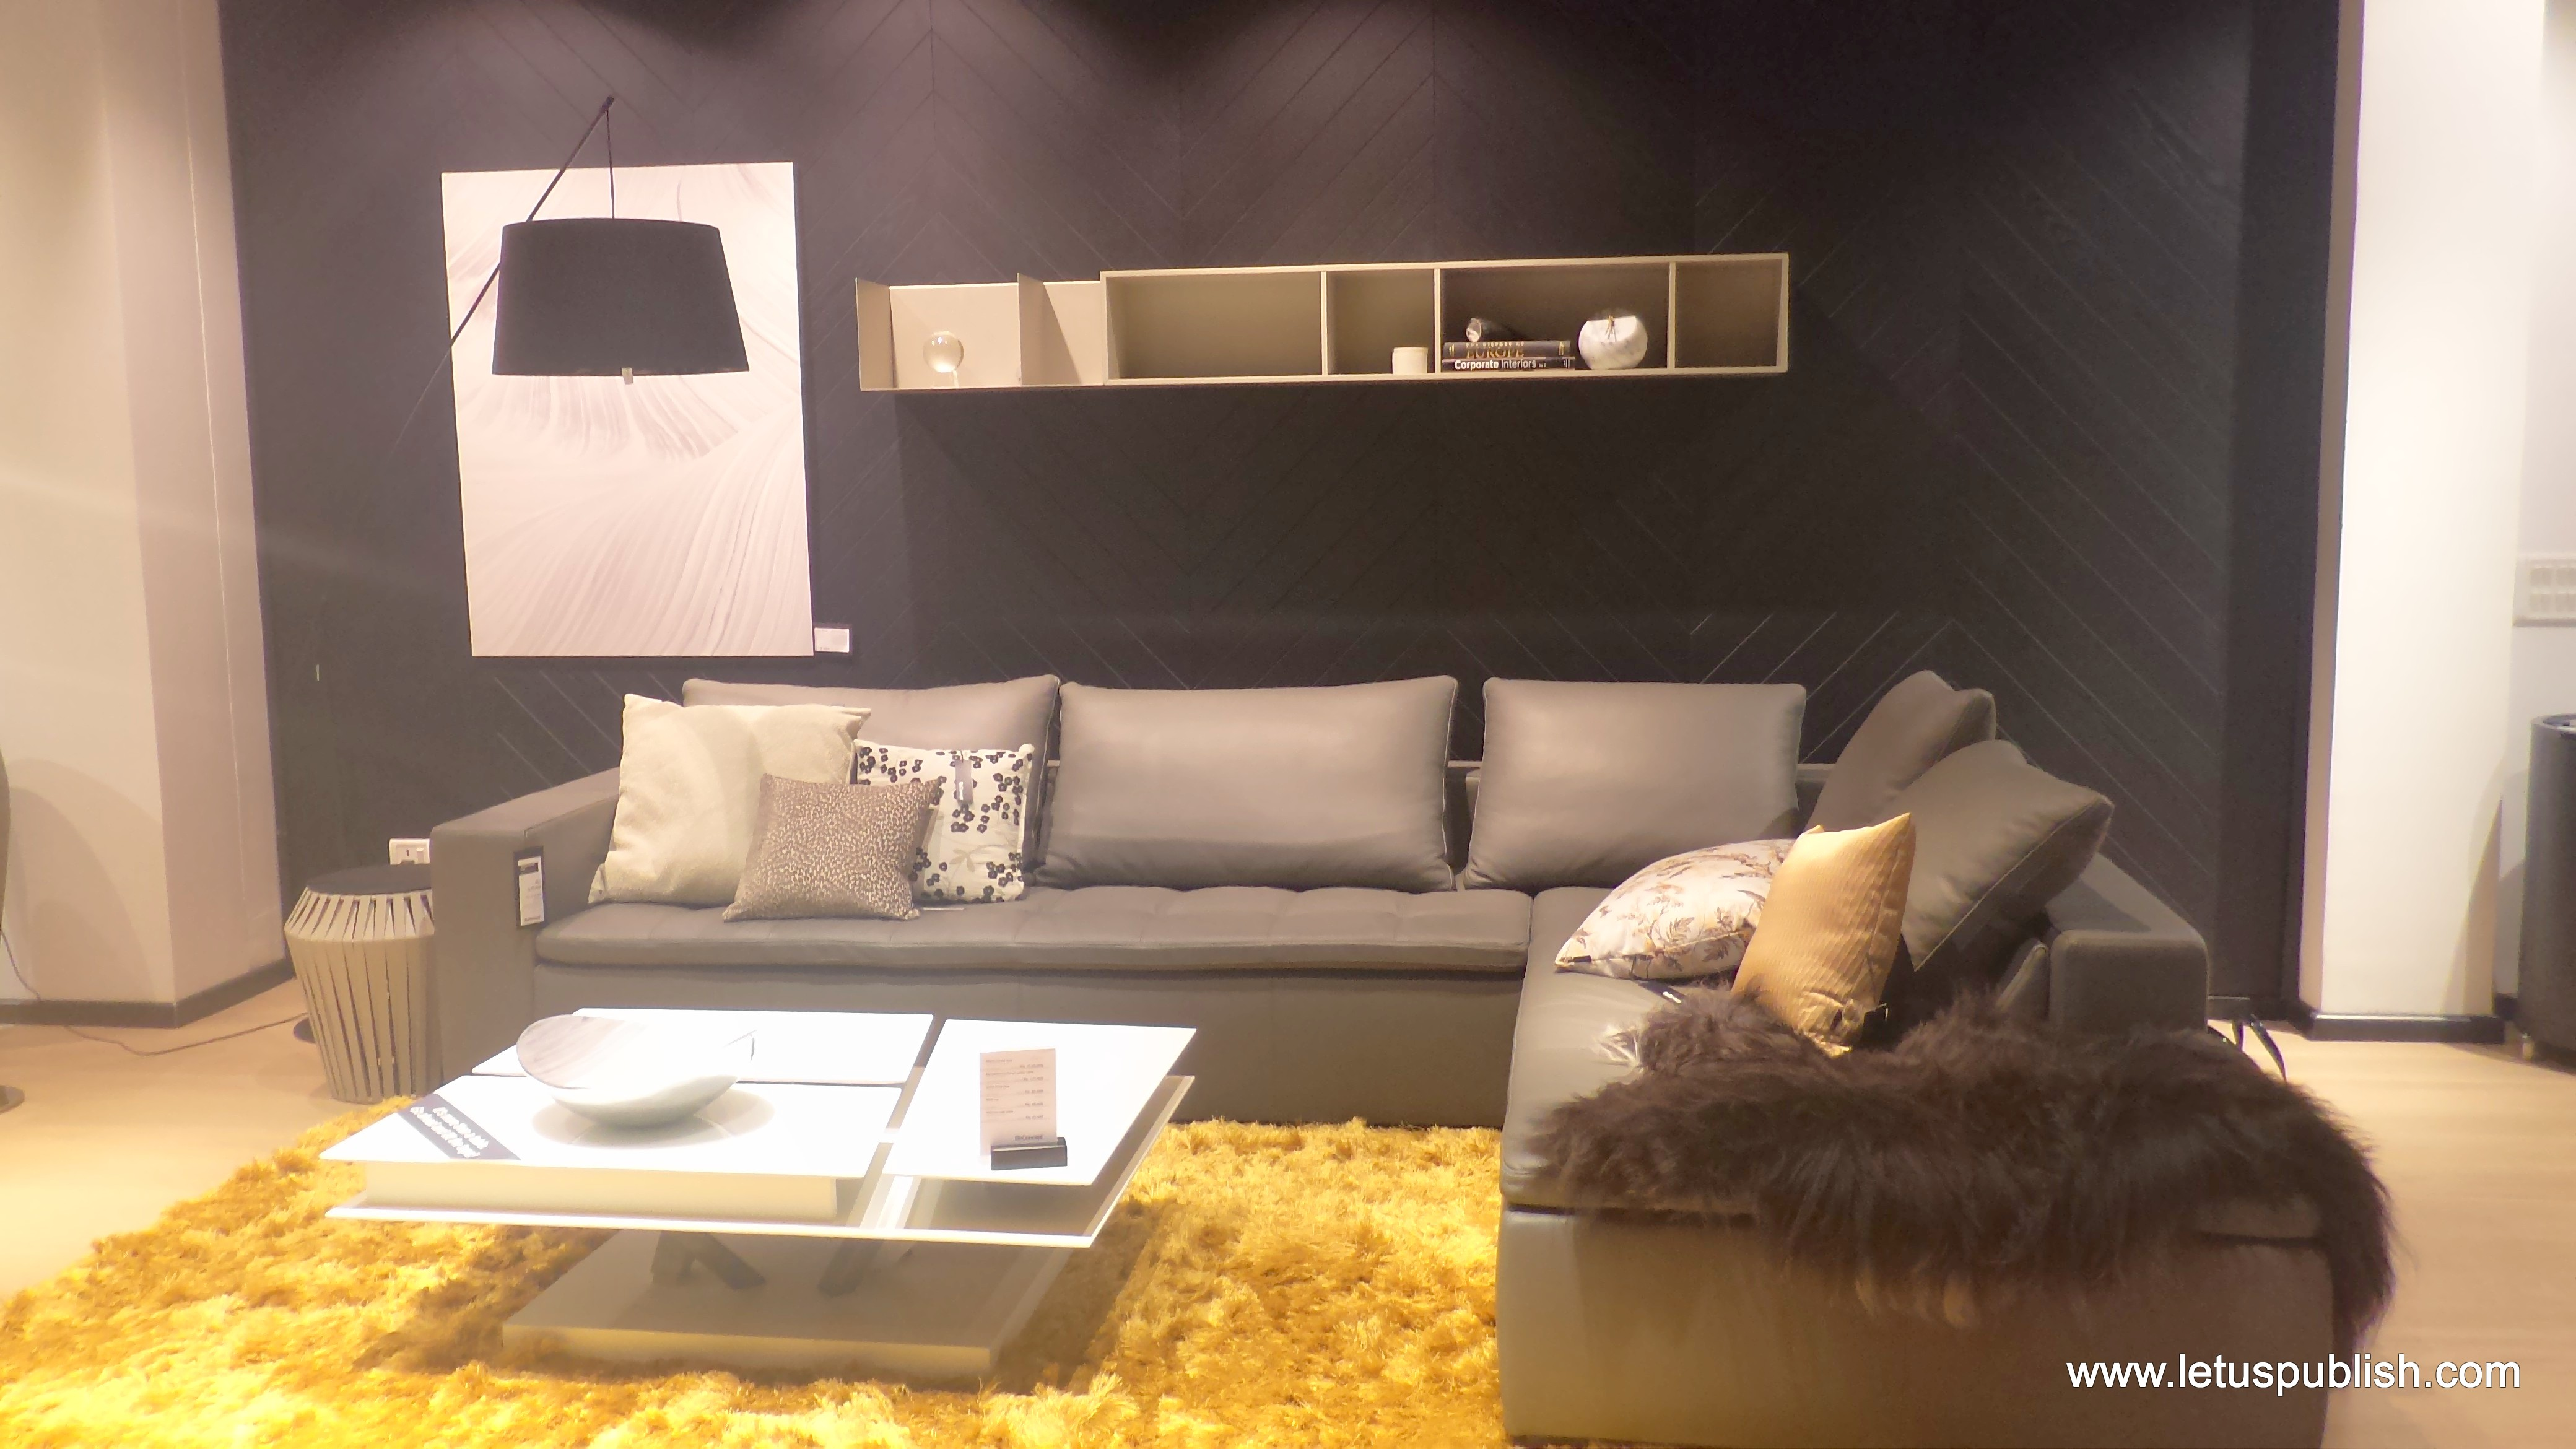 buy used sofa set in delhi standard height of luxury modern furniture from boconcept let